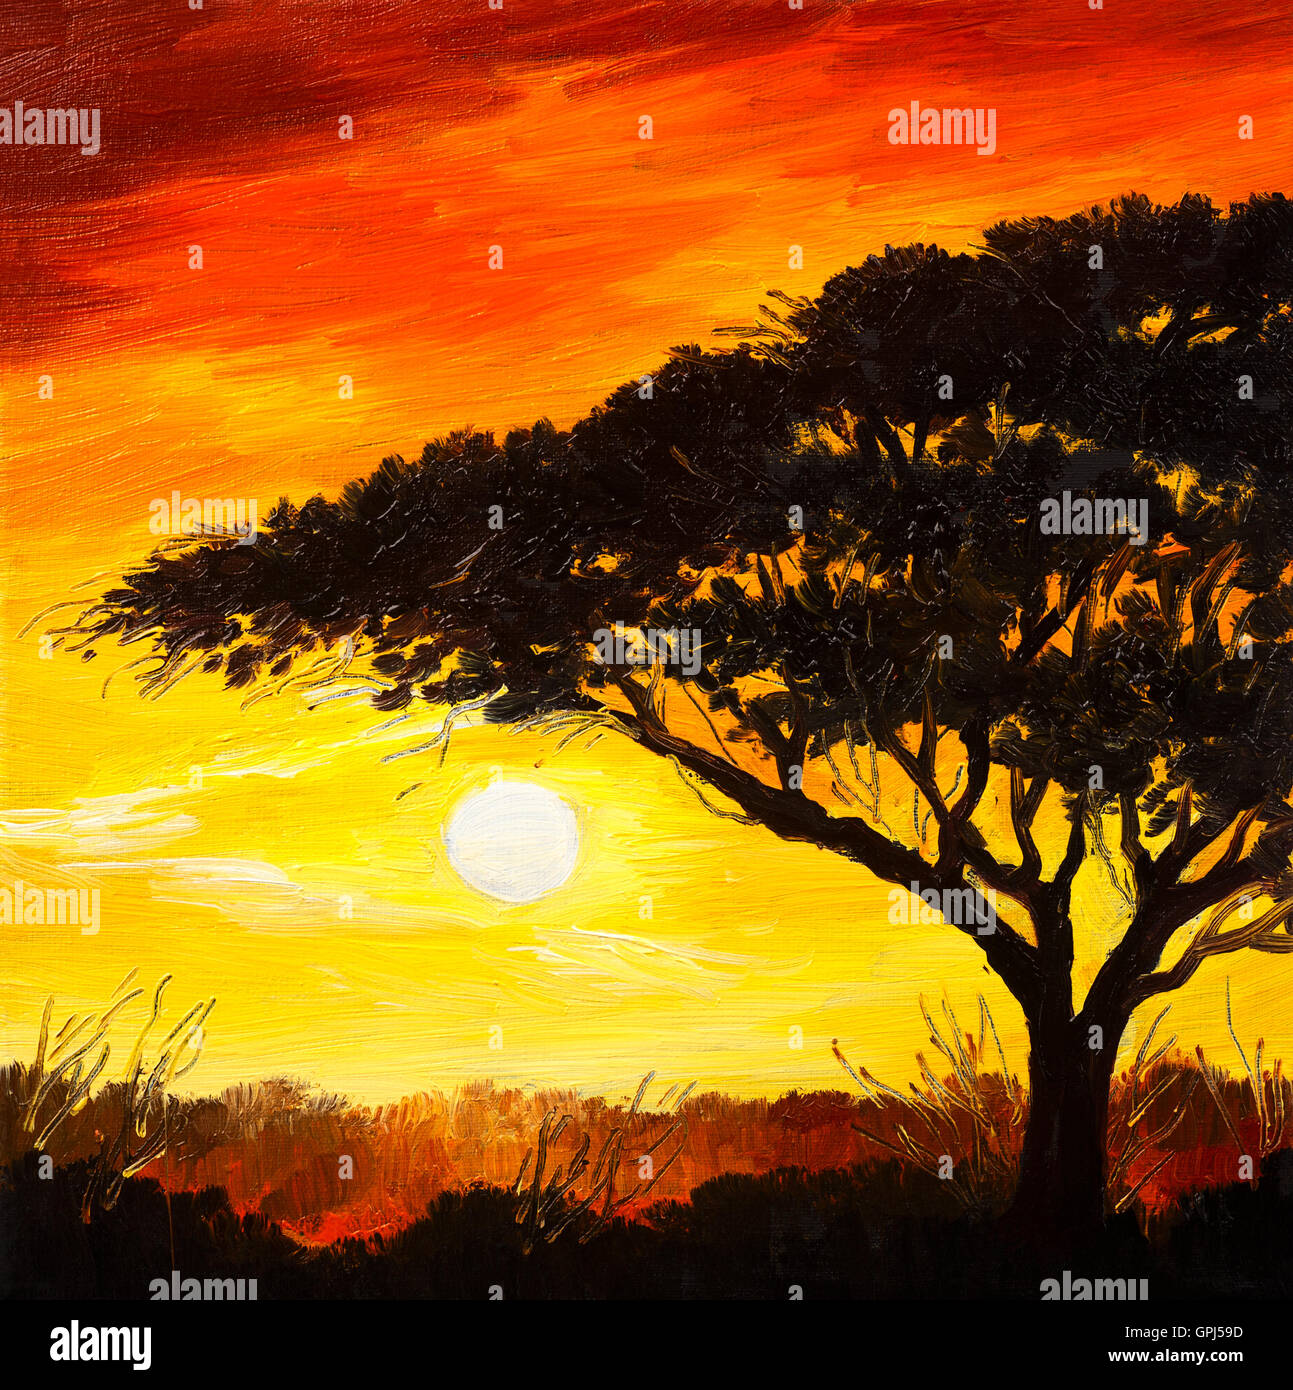 oil painting landscape - sunset in the forest, wallpaper, bright sun